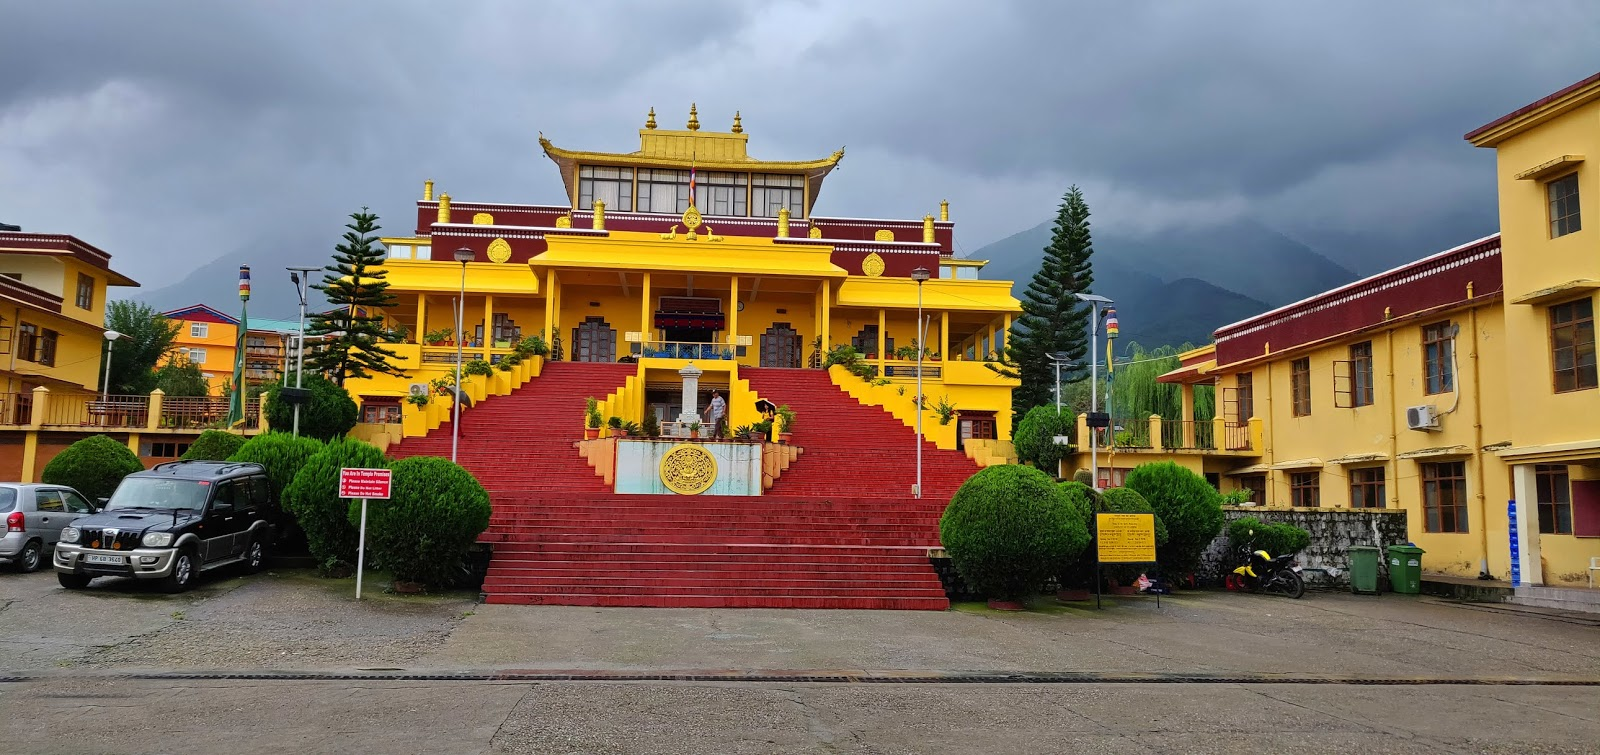 Trip to Mcleodganj and Dharamshala- Gyuto Monastery